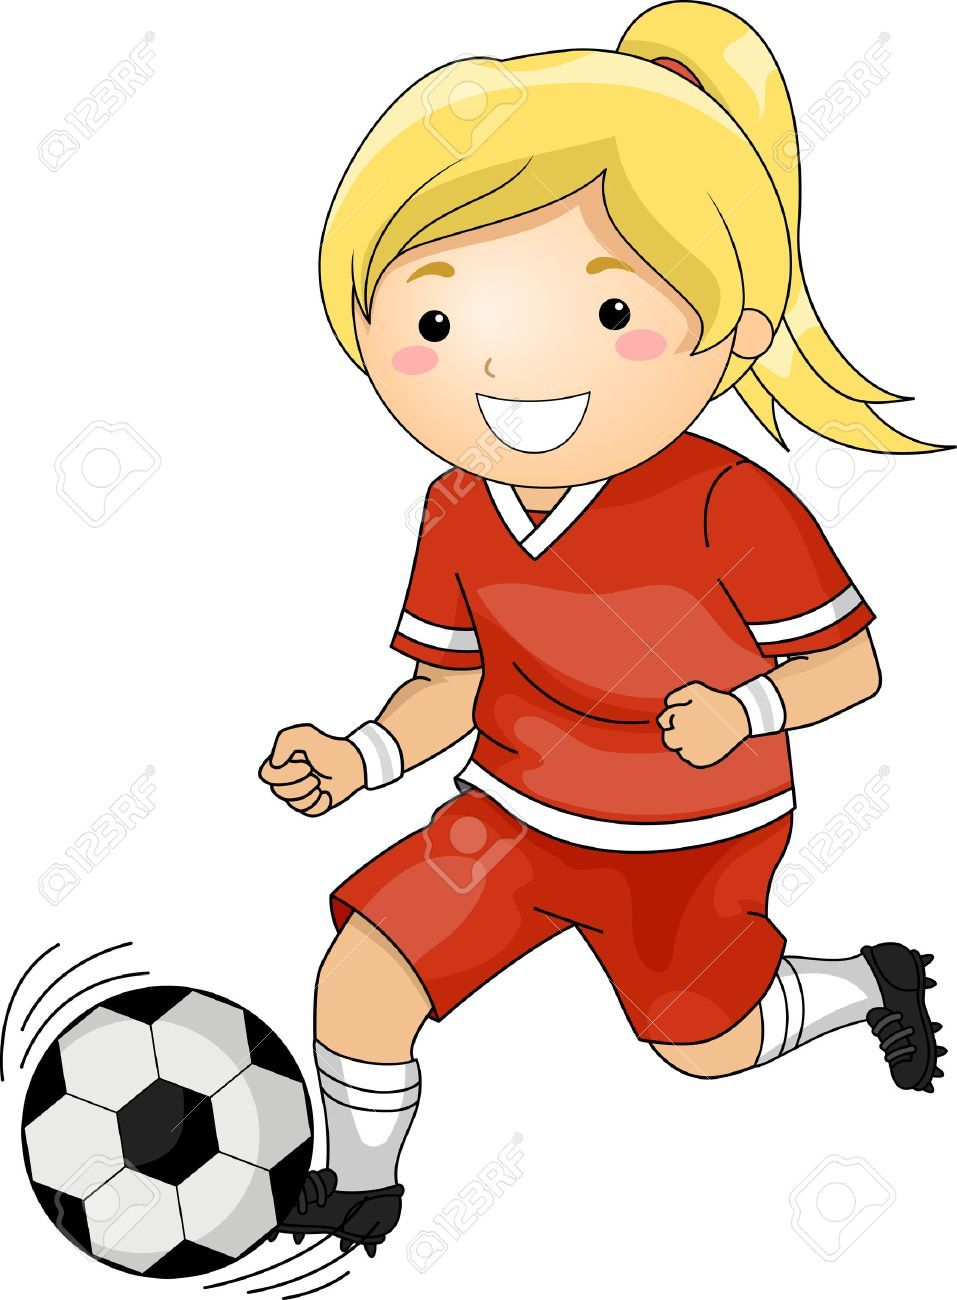 Girl soccer player clipart 5 » Clipart Portal.